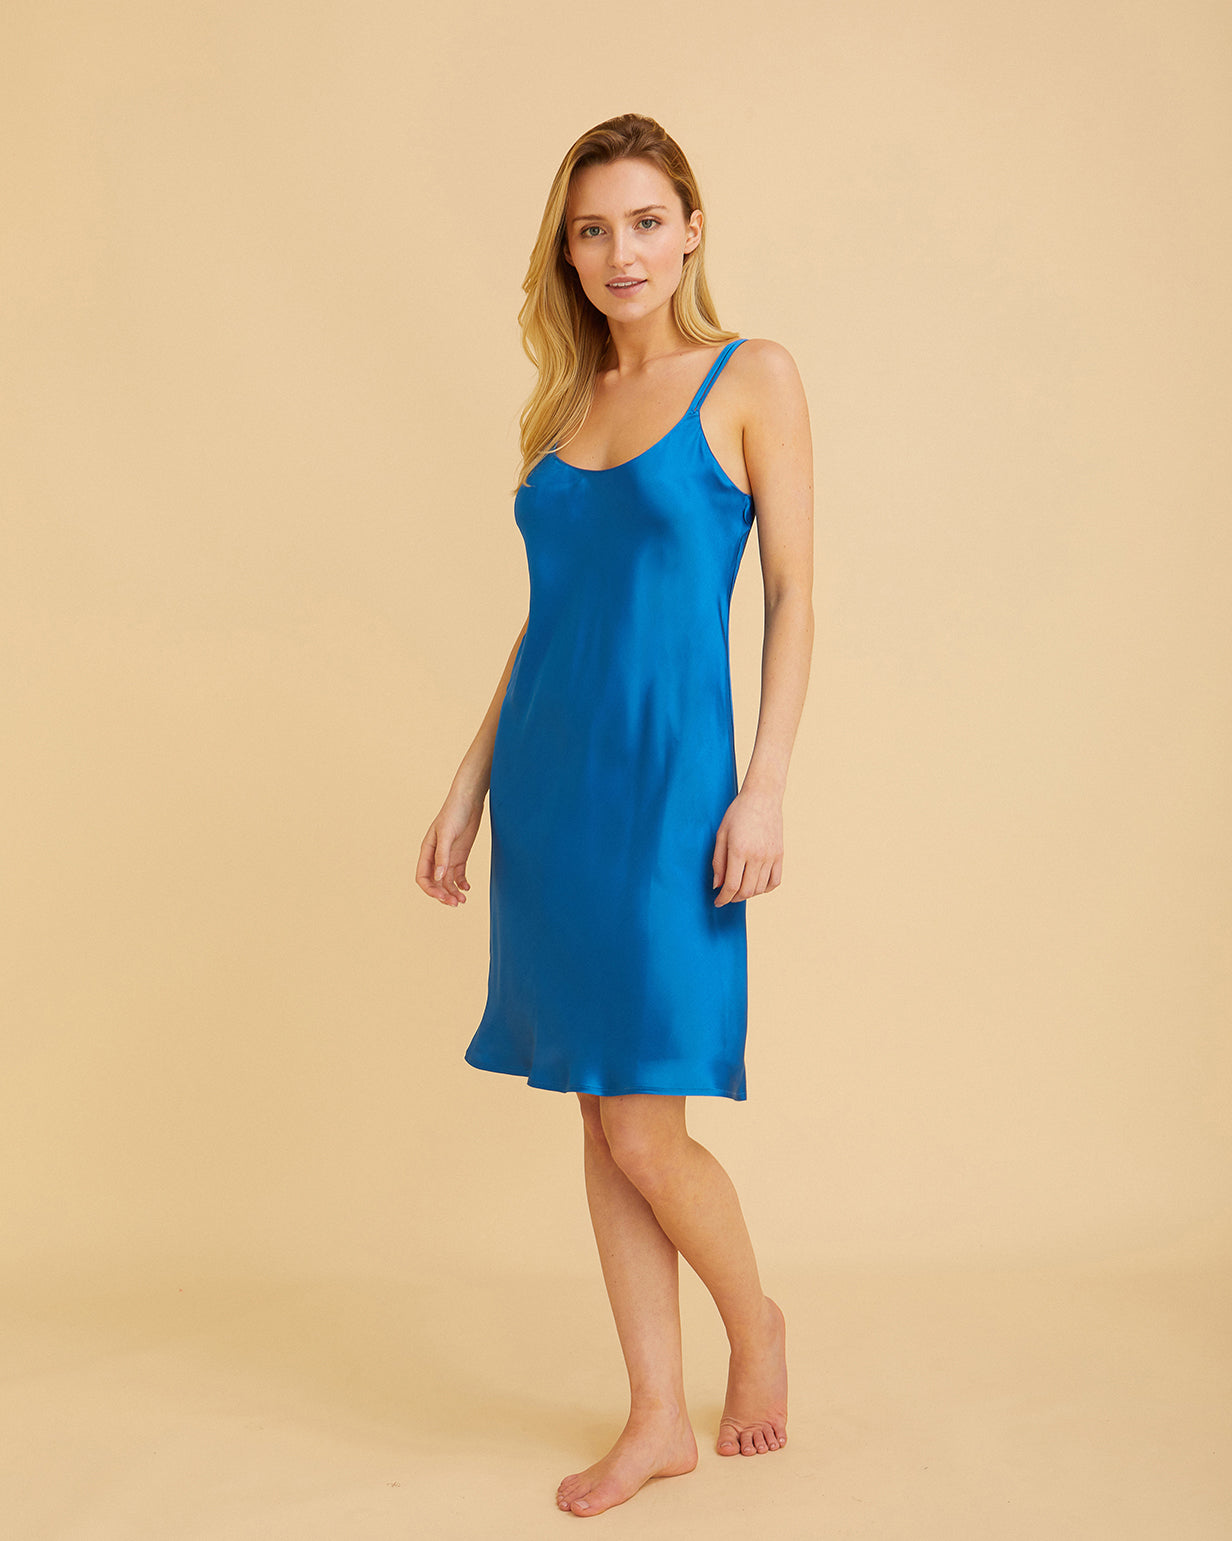 Women's Short Silk Nightdress – Peacock Blue | Bonsoir of London